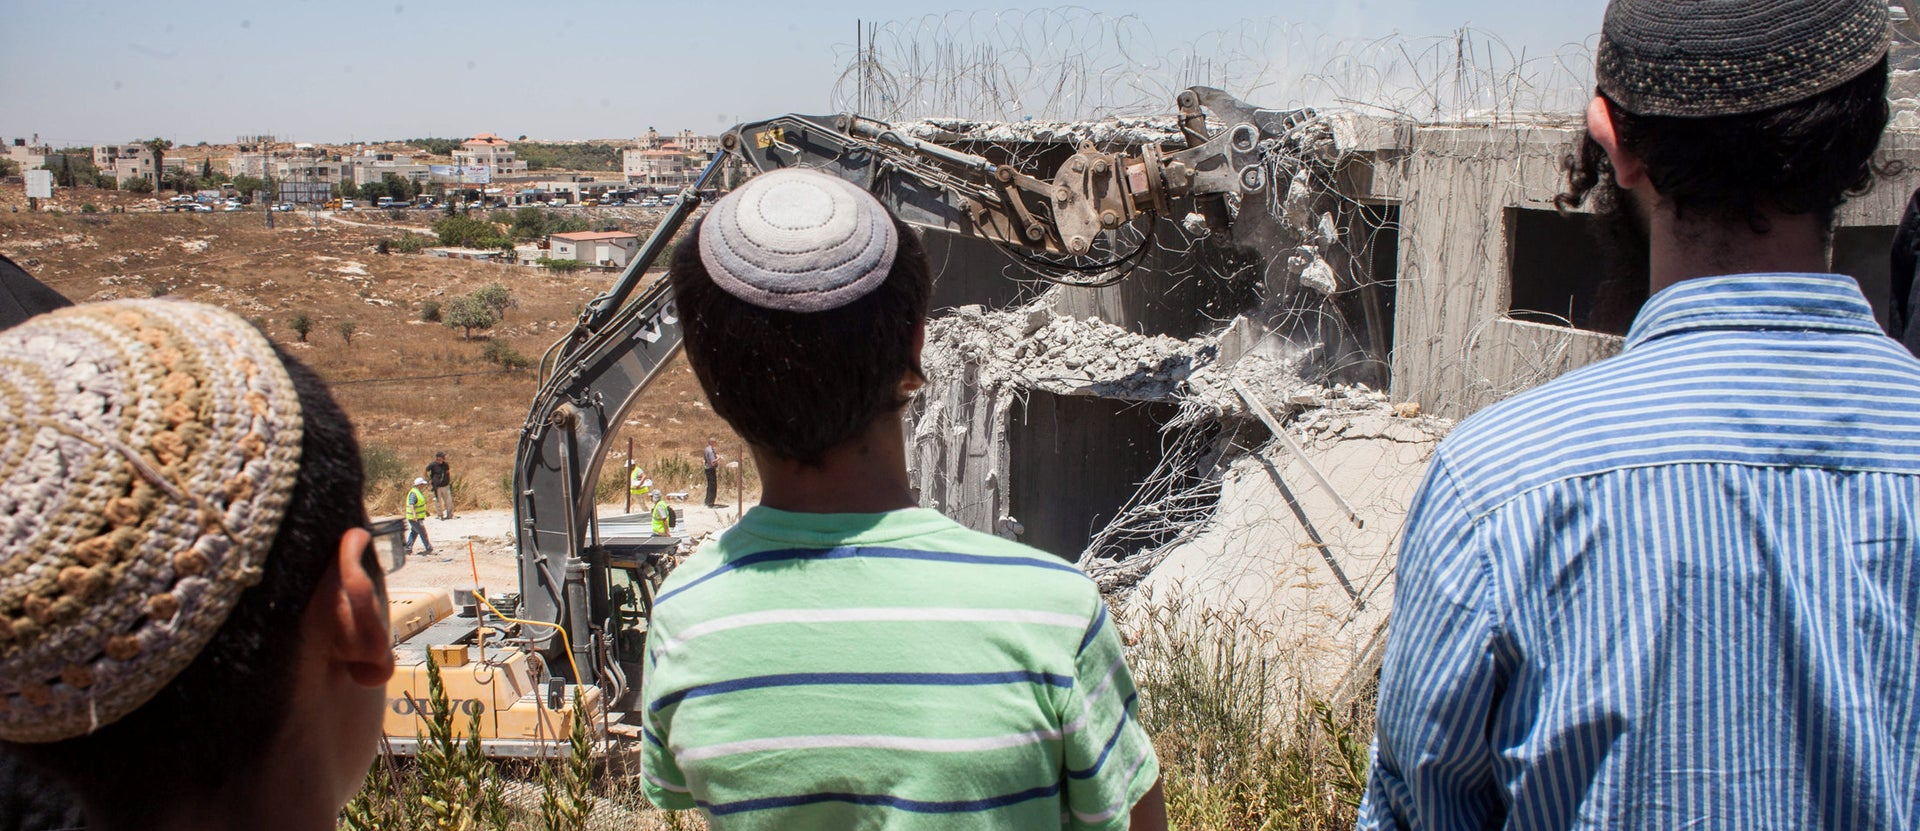 Jewish settlers watch as Israeli forces demolish an illegally built structure in a West Bank settlement